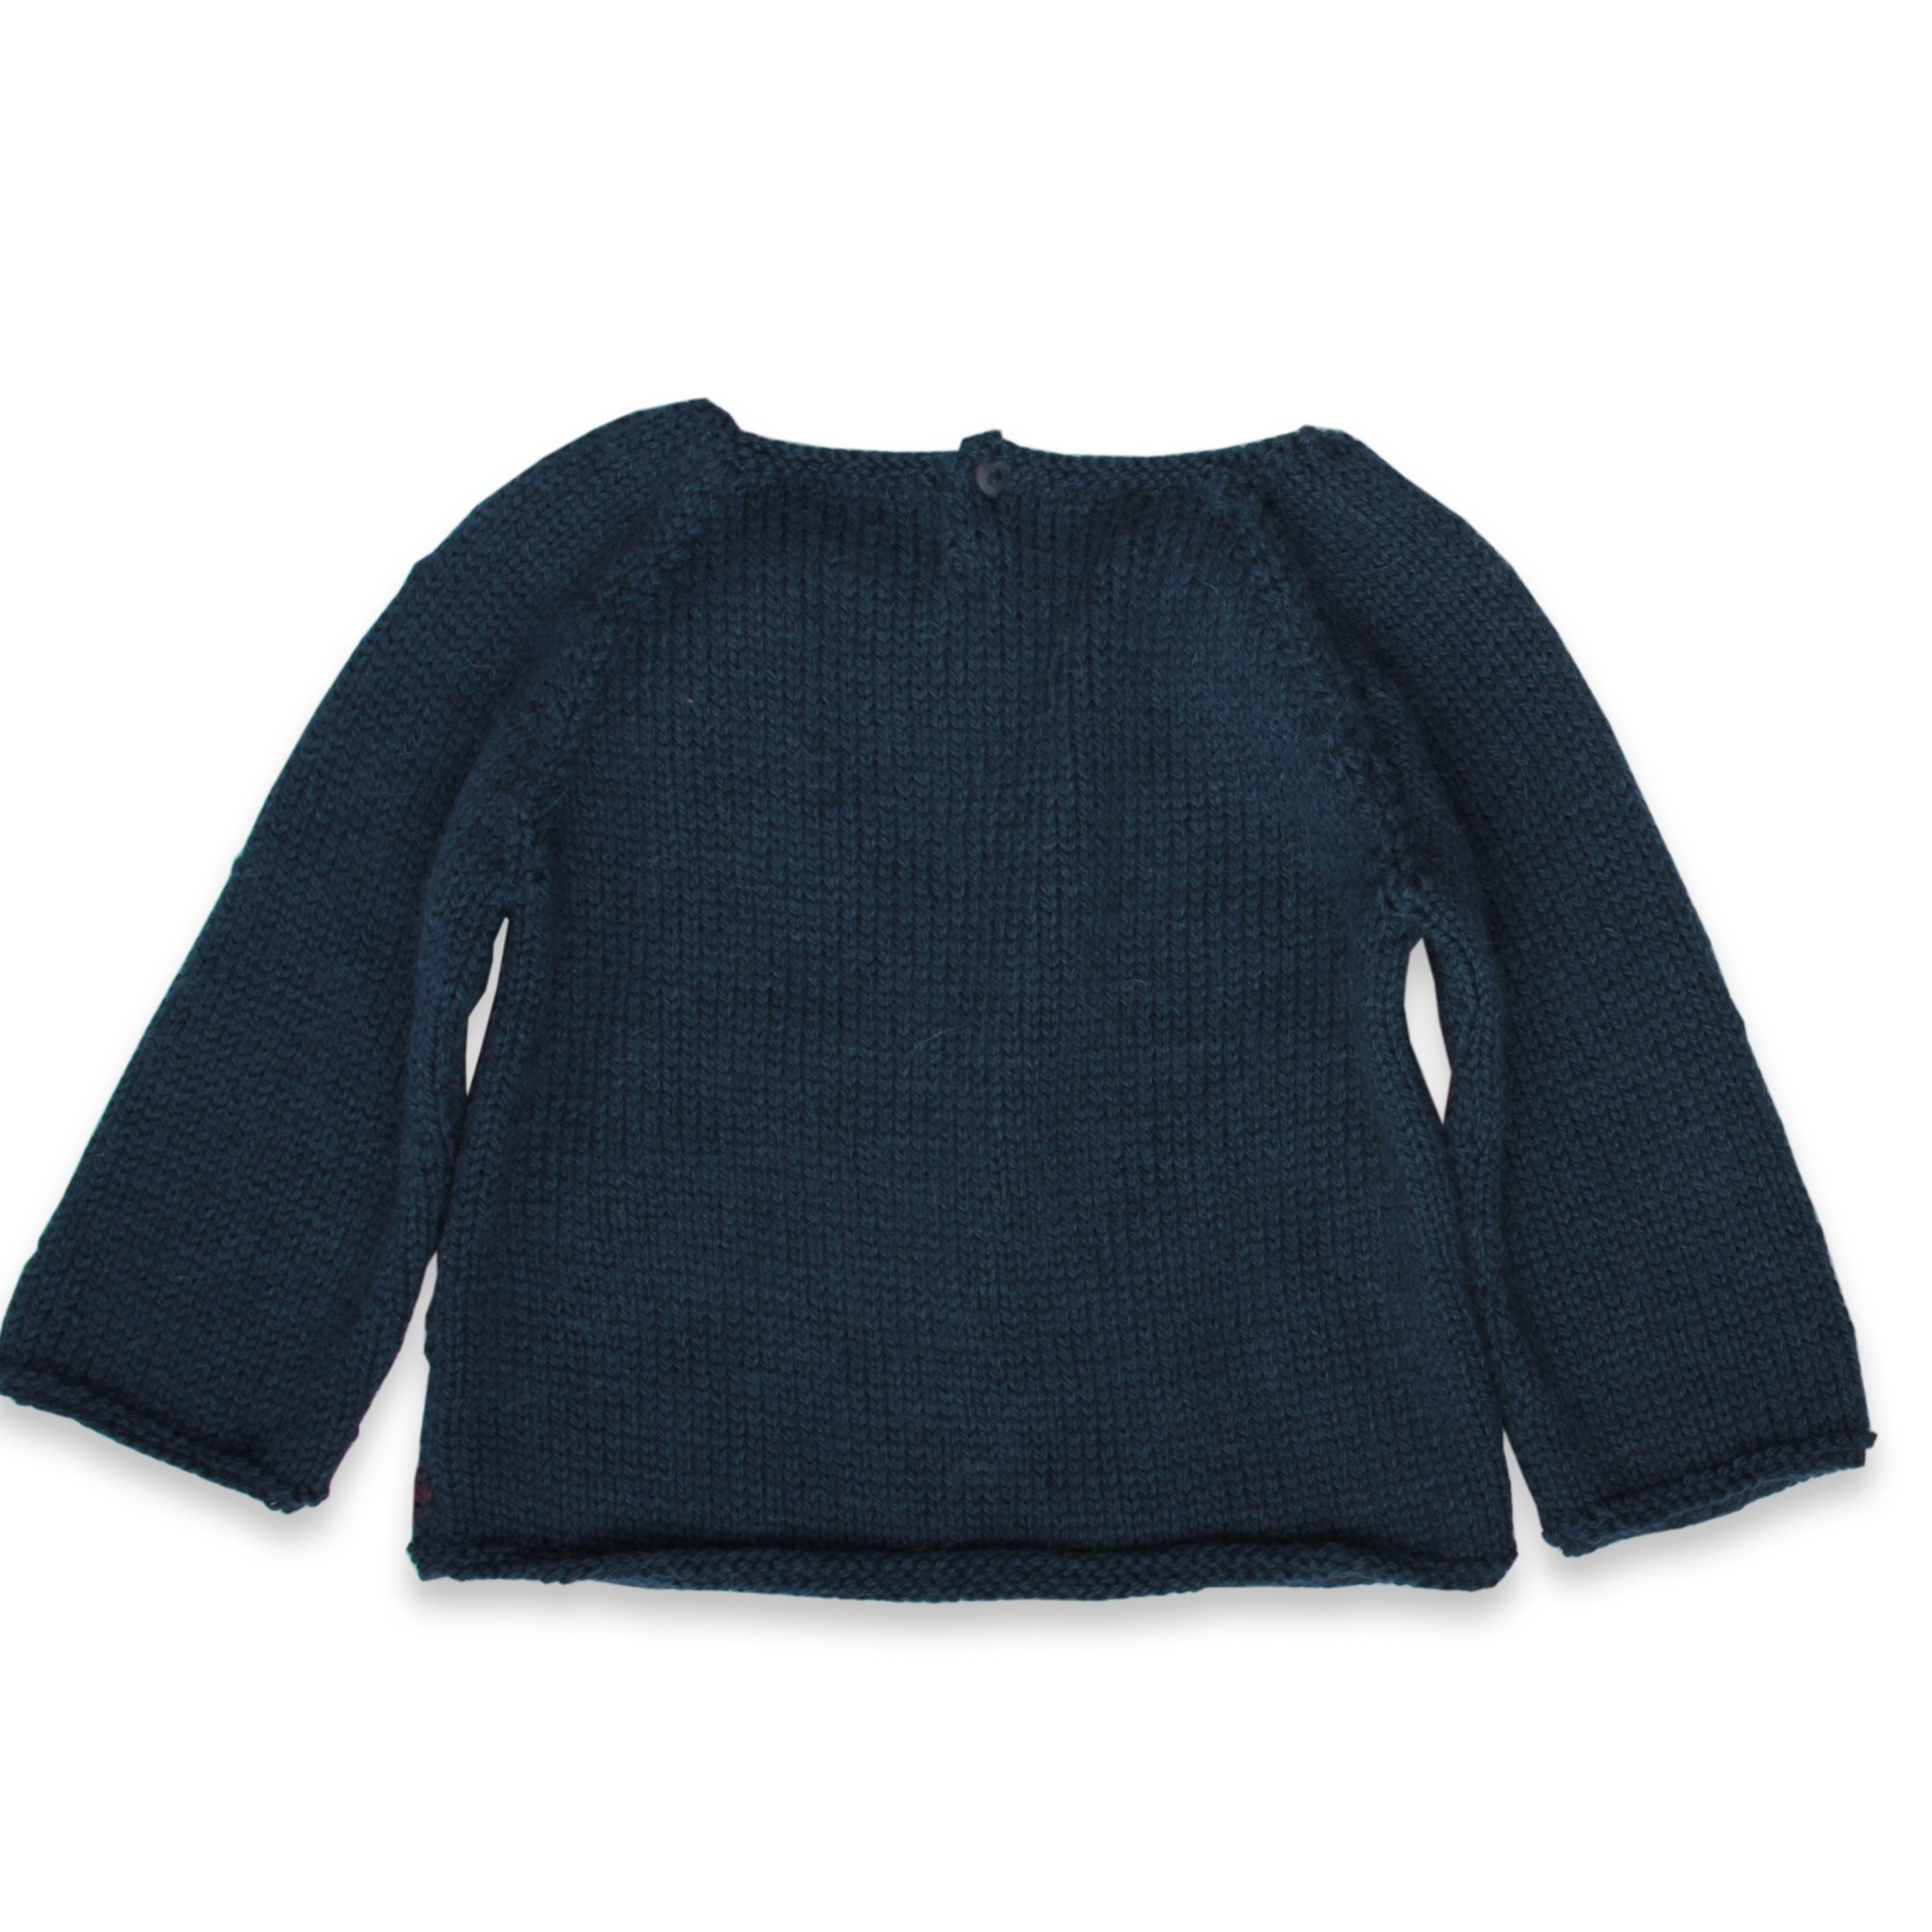 ce25903d4f Granny s knitwear - Navy blue sweater for baby girls with small ...